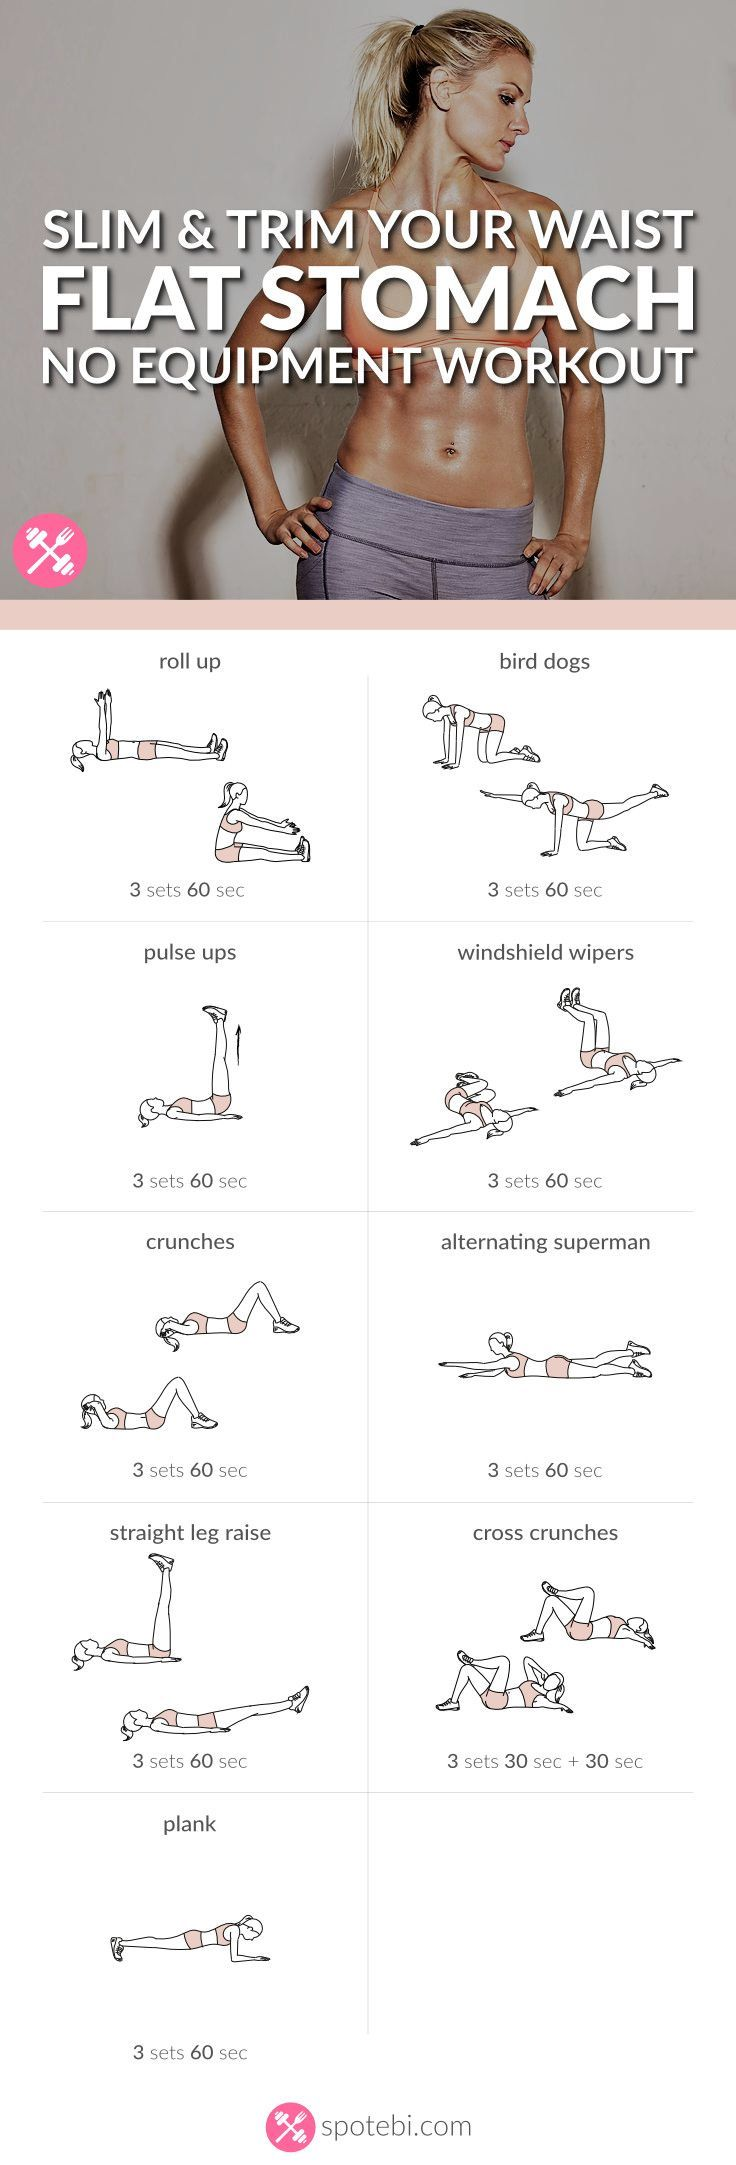 Want to easily whip your tummy into shape? Try this at home flat stomach workout for women, to sculpt your abs in no time, and get a slim, toned and trim belly. http://www.mydoterra.com/grantshort/#/essentialOils101